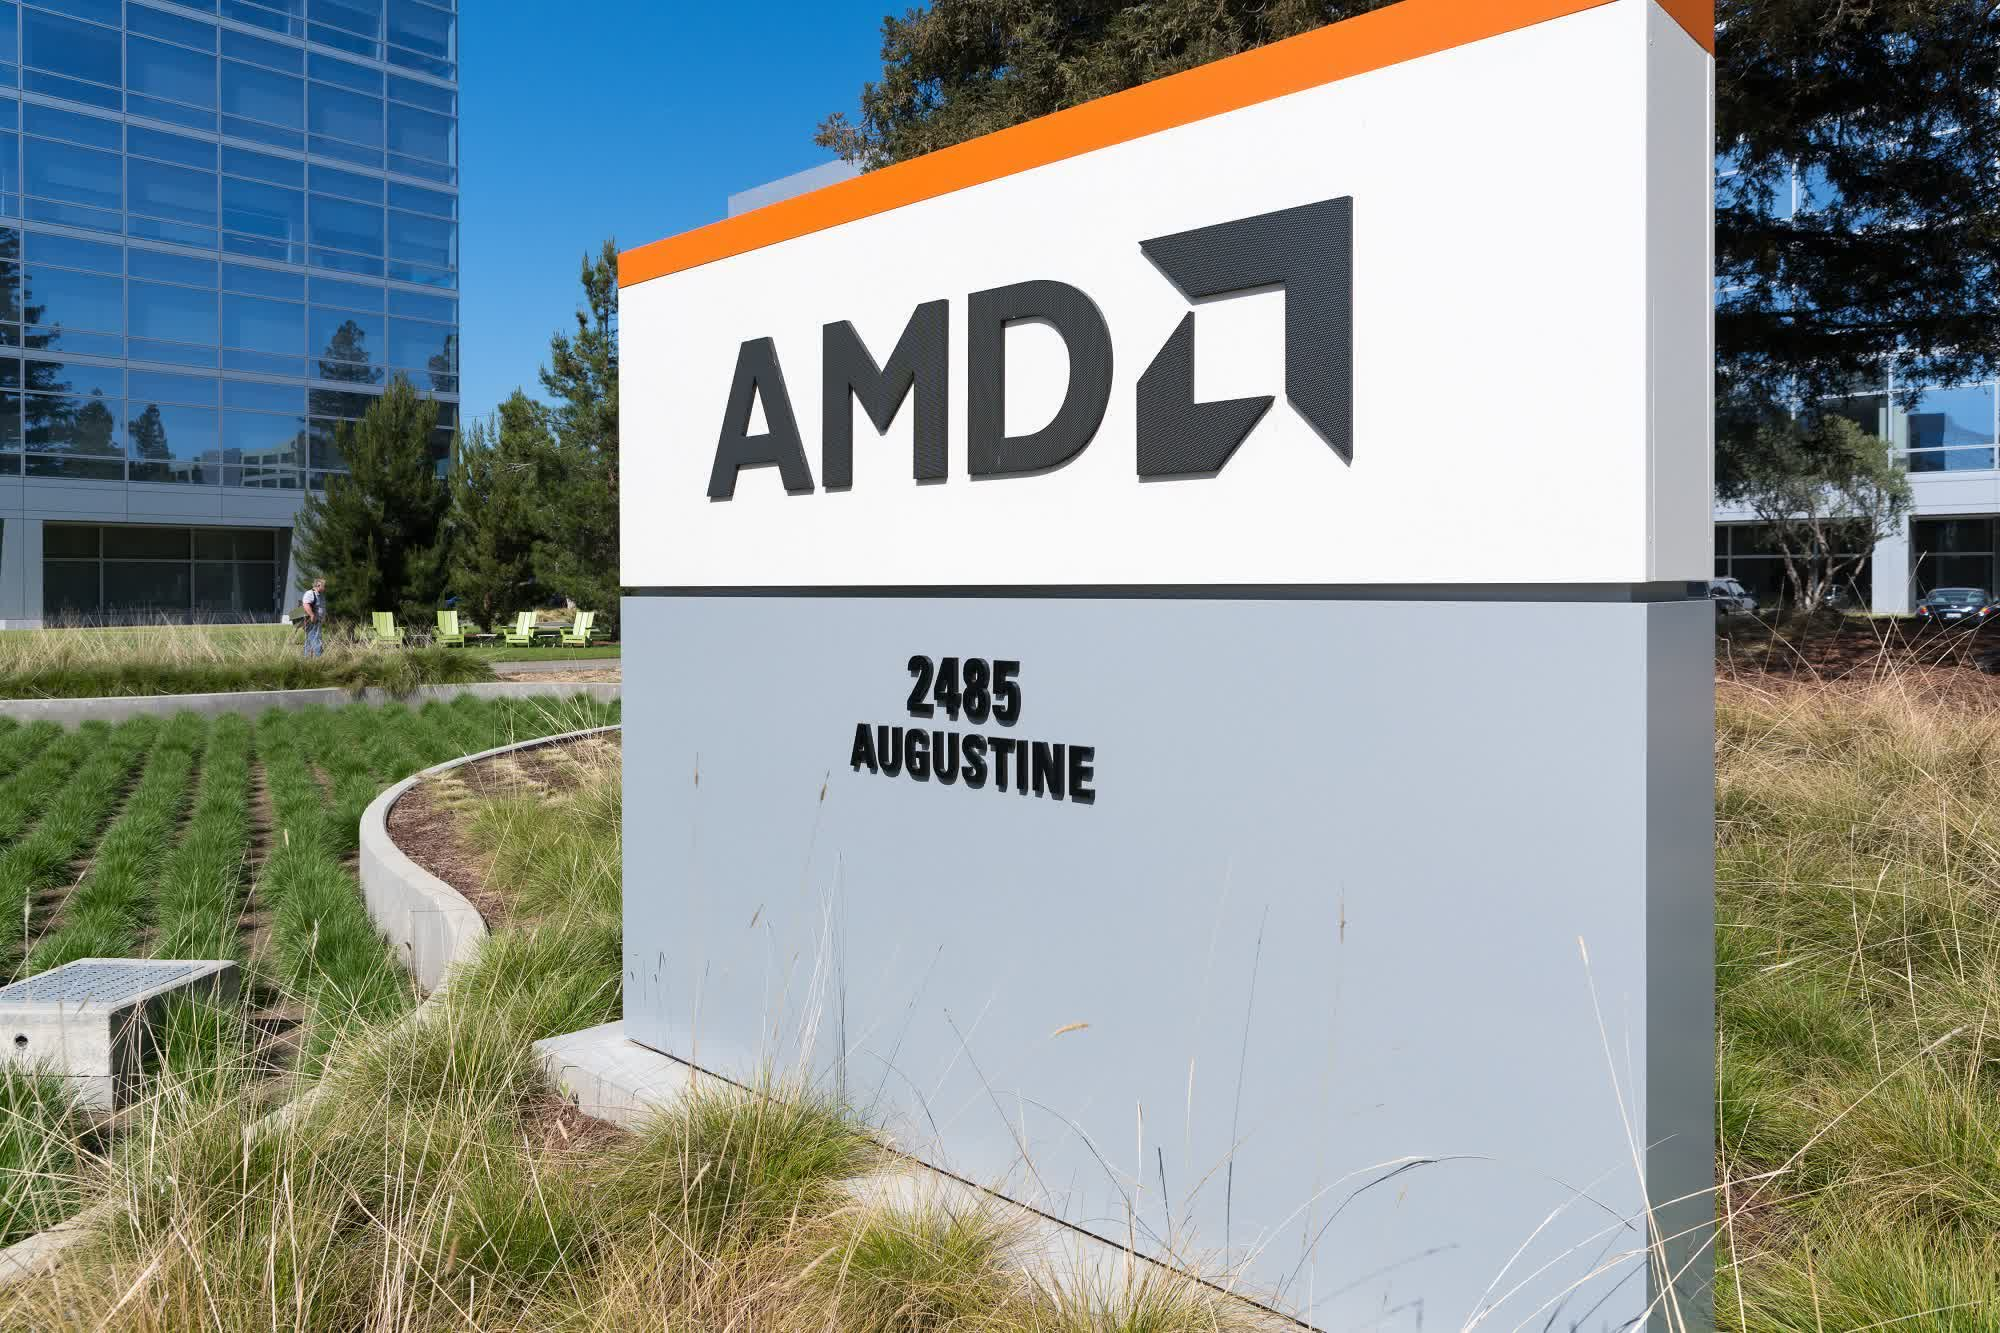 AMD reportedly in talks to acquire Xilinx for $30 billion